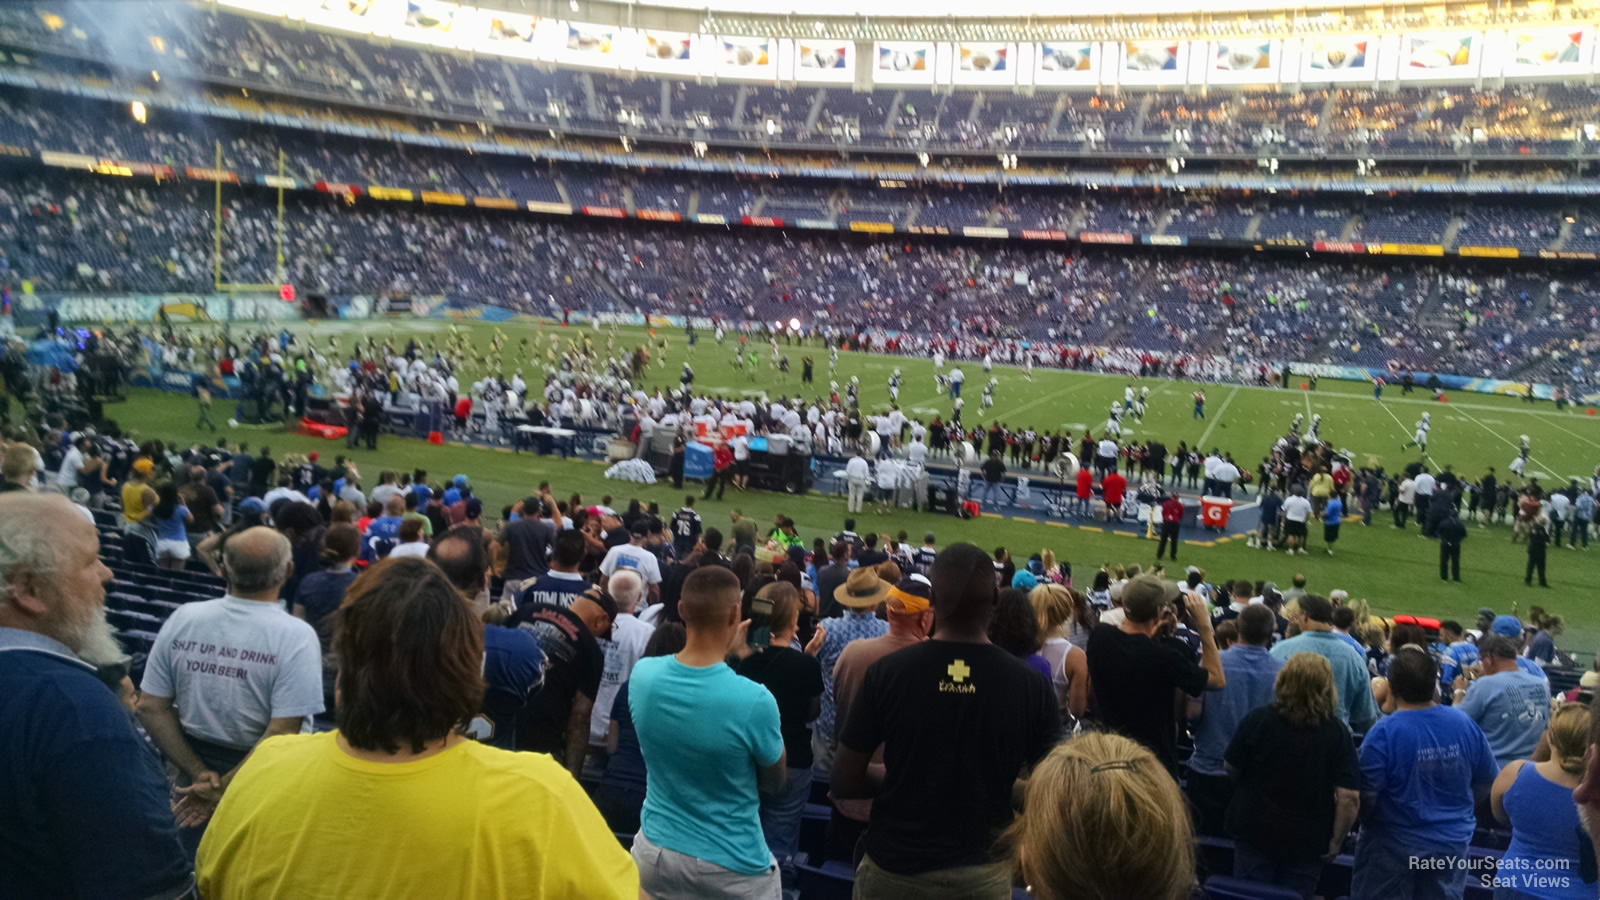 Seat View for Qualcomm Stadium Field 38, Row 24